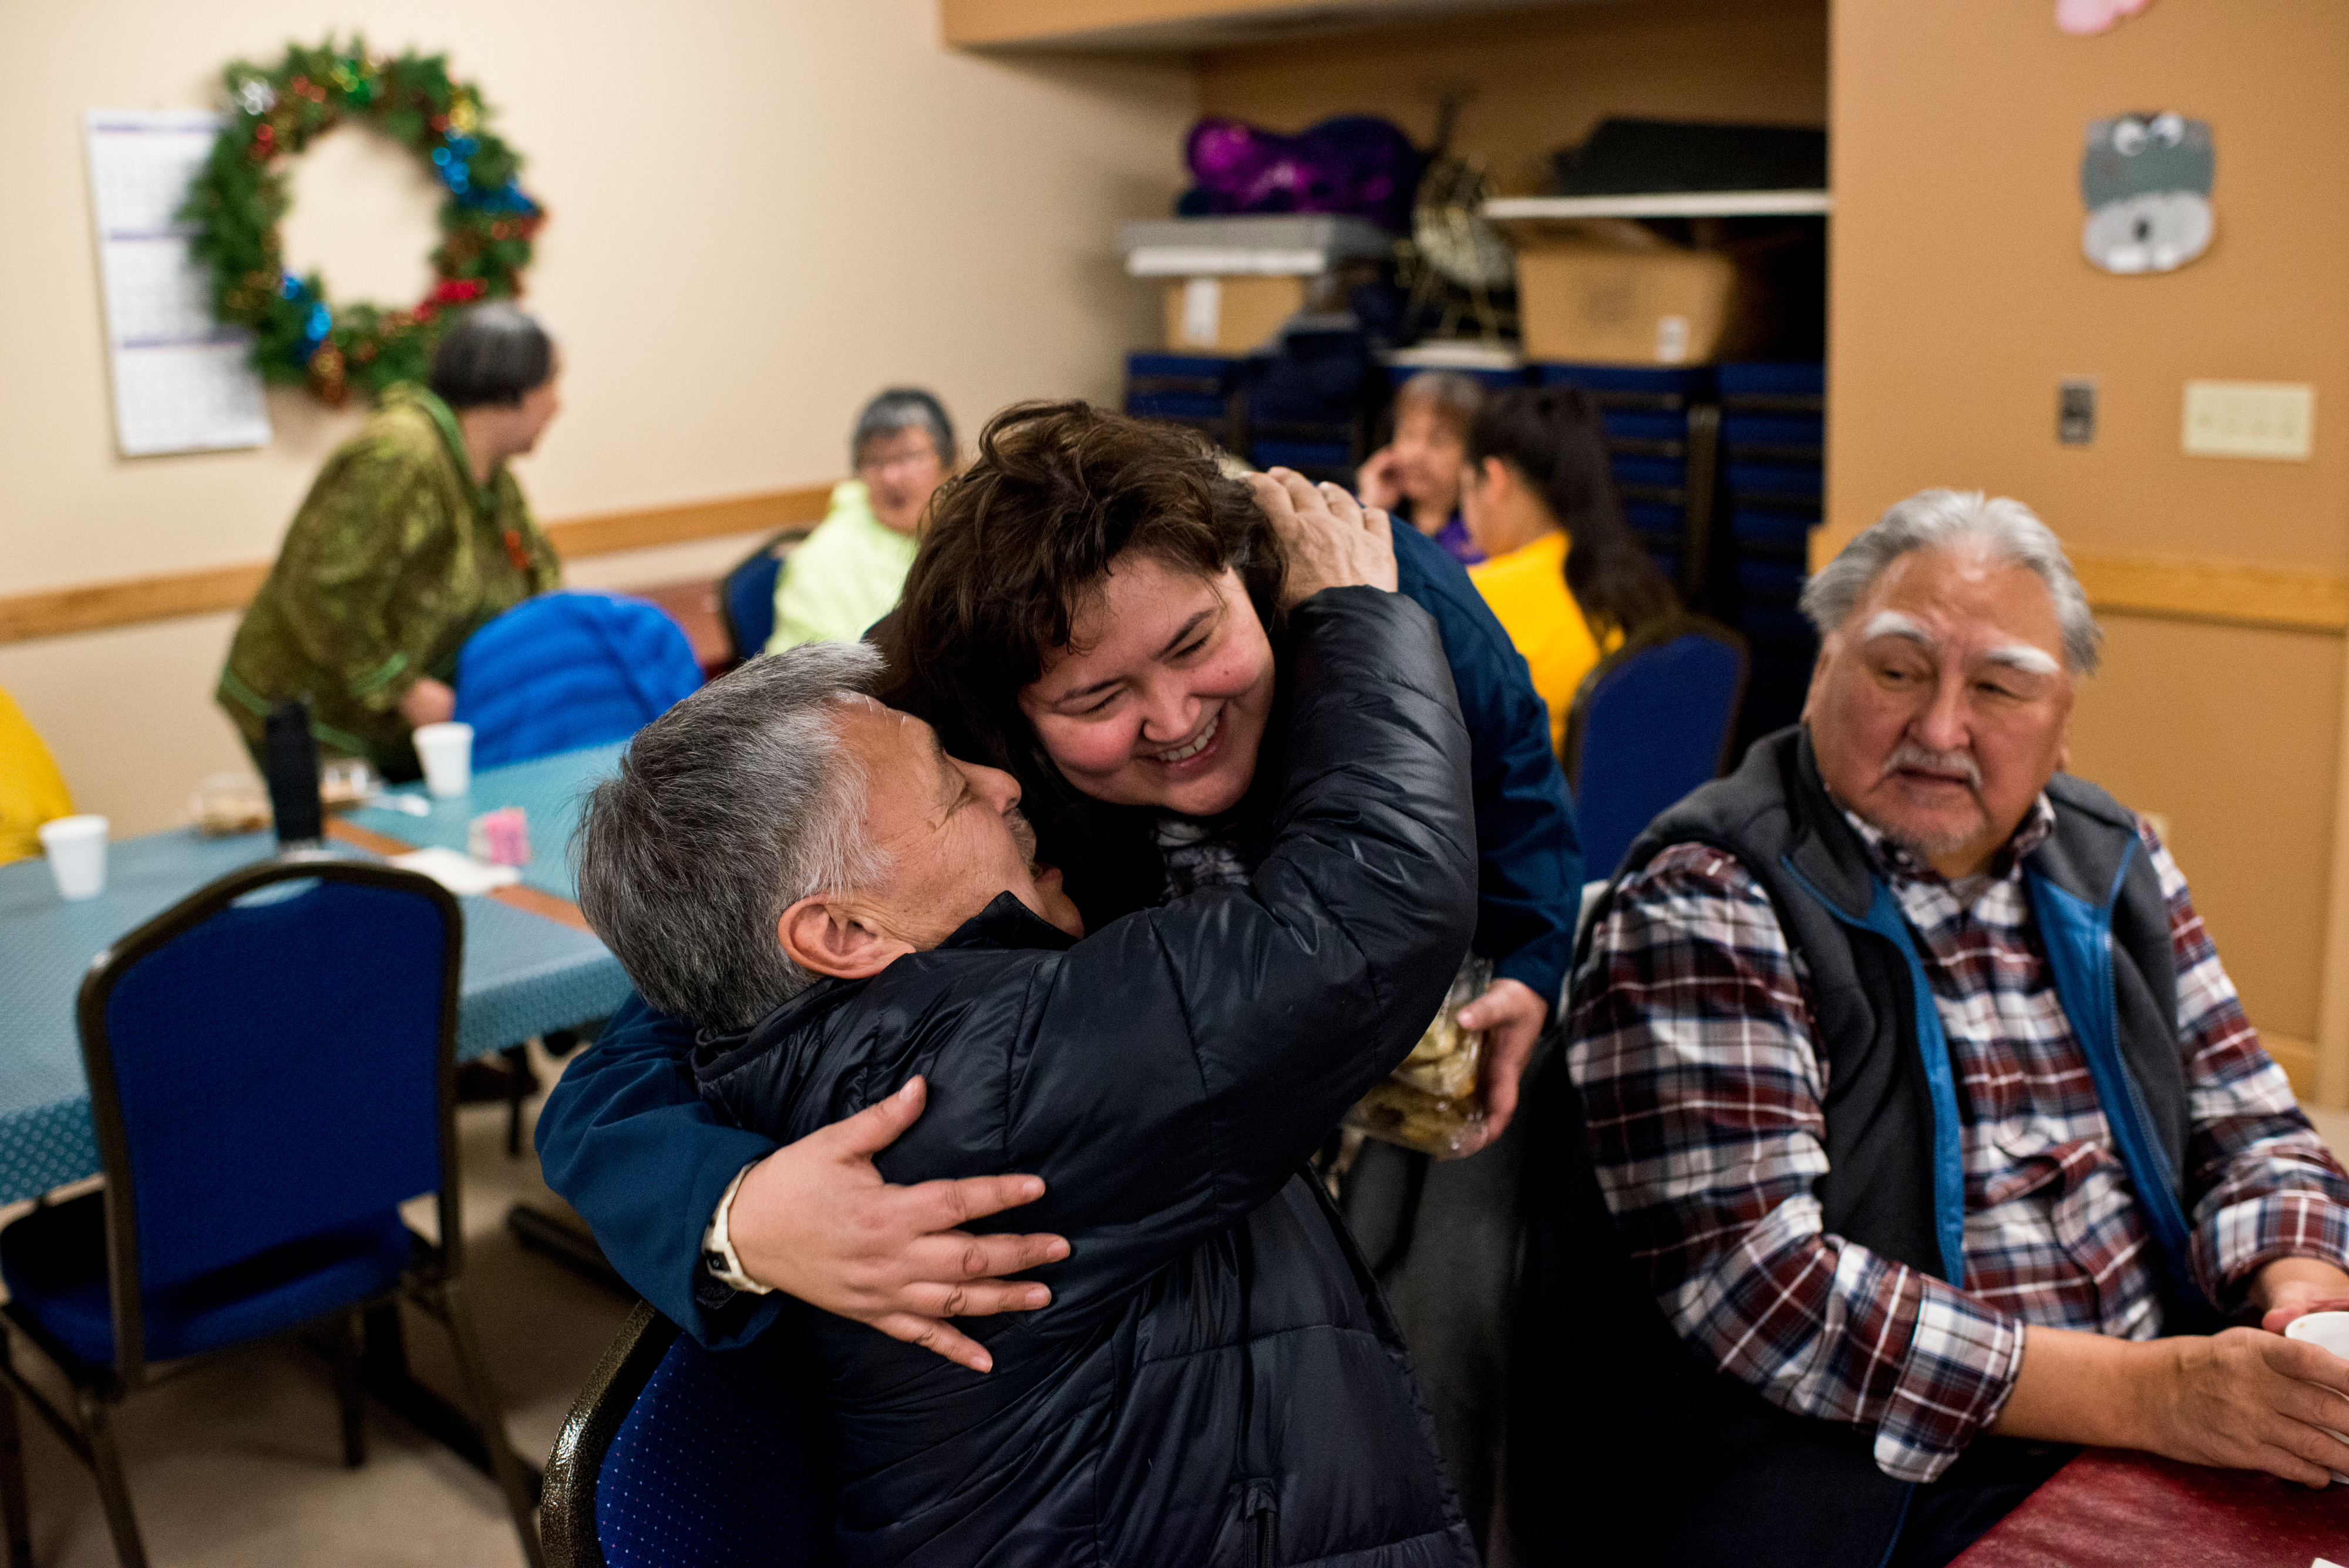 """Arnold Brower gets a hug from Susan Hope during a holiday dinner at the North Slope Borough Senior Center. Brower says he's open to the name change as it was approved by voters, and that people will accept it in time. """"I know it won by a small margin, but that's what politics is,"""" he said. Voters approved changing the name of the city of Barrow to Utqiagvik in October, a change which went into effect on December 1. In Alaska's northernmost city, however, residents remain divided about whether they name should've changed at all, whether the process was hurried, and whether the Utqiagvik is even the proper Inupiaq place name. Photographed on Monday, December 12, 2016. (Marc Lester / Alaska Dispatch News)"""